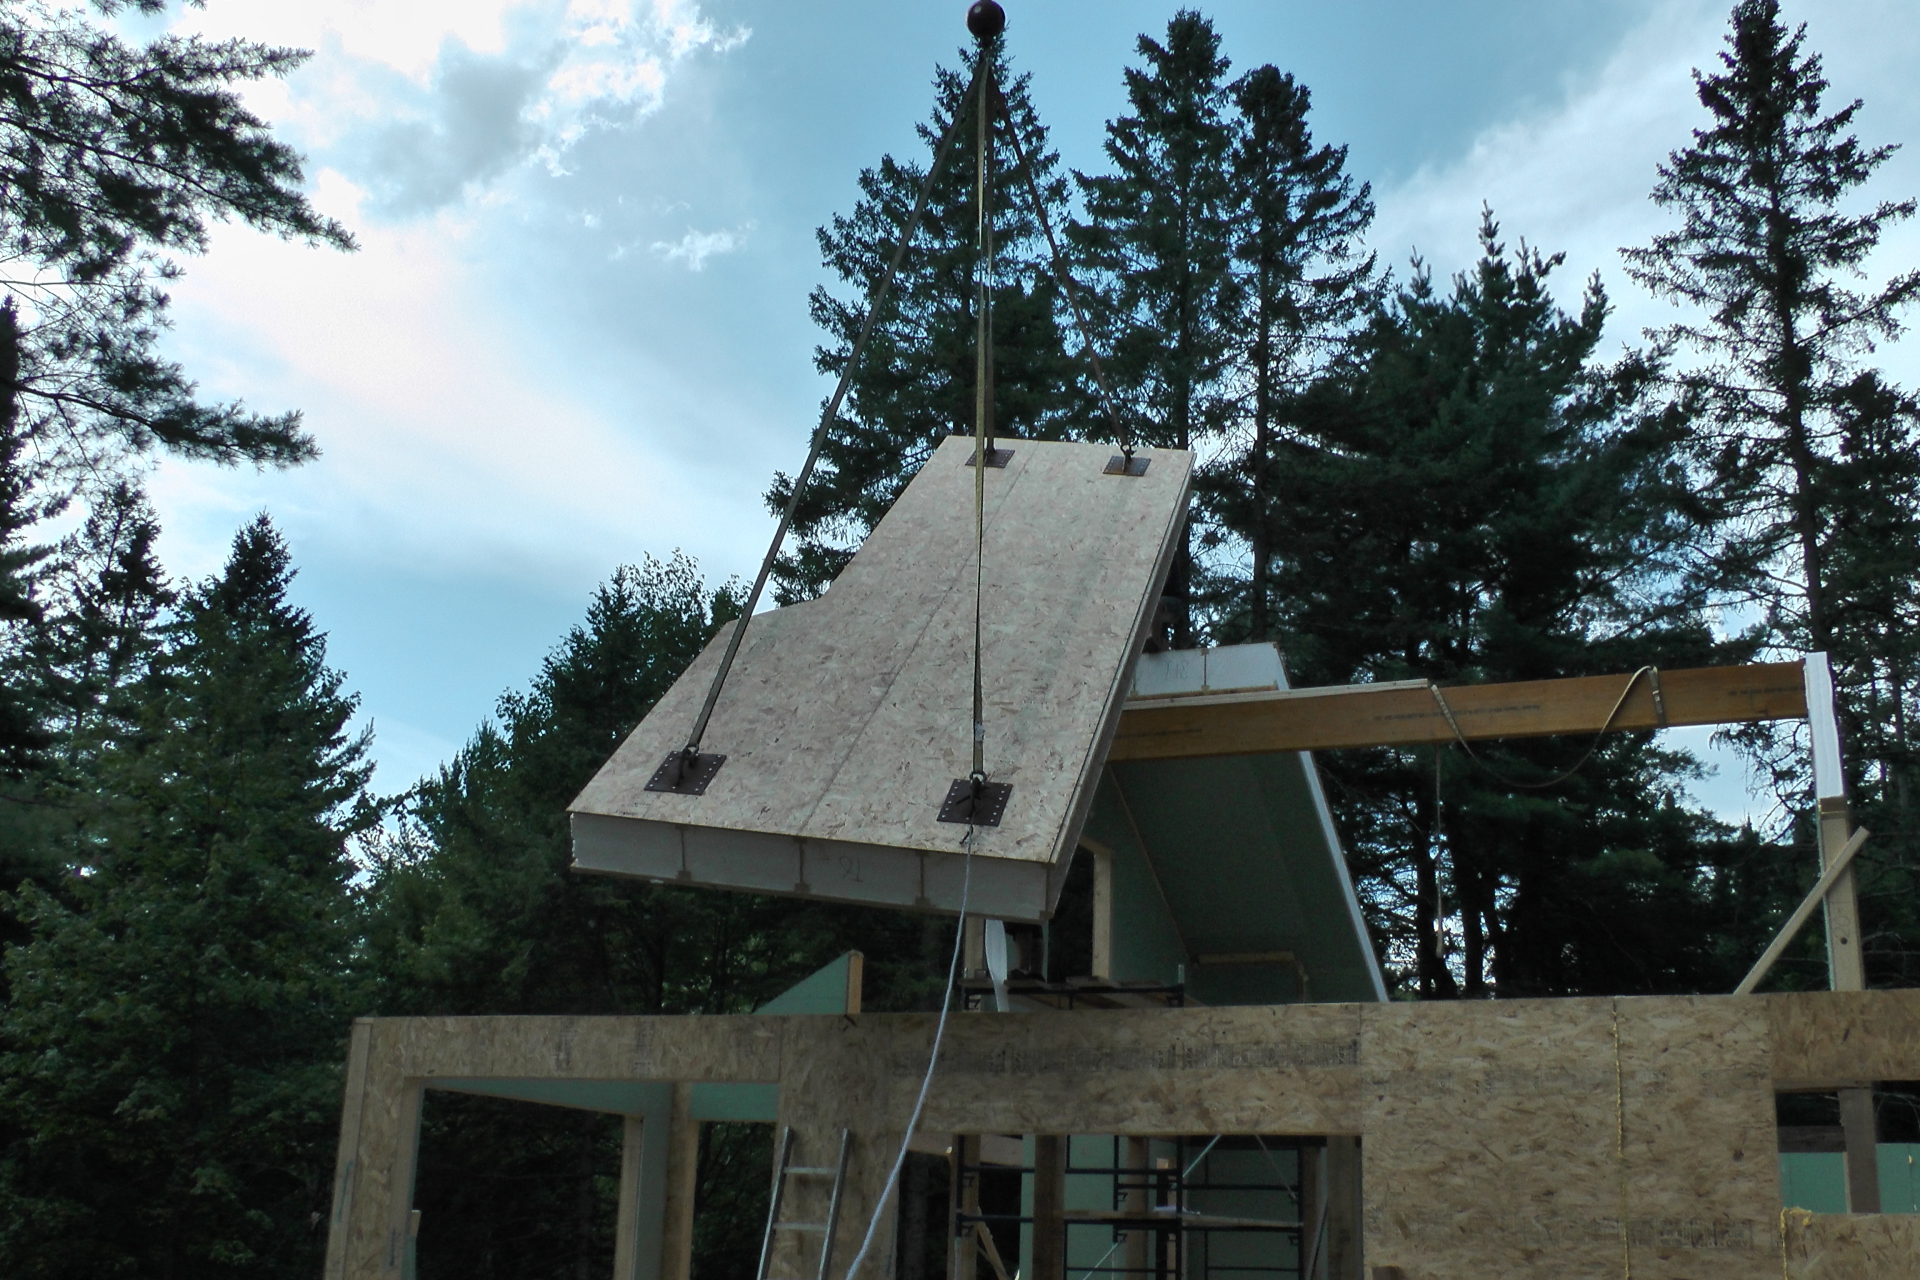 Prefabricated roof system; SIP; Green roof; Banerpan; Passive house roof; high R-value roof, SIP roof; prefabricated building system;  Prefabricated building envelop; sustainable roof; sustainable building envelop; sustainable building system;